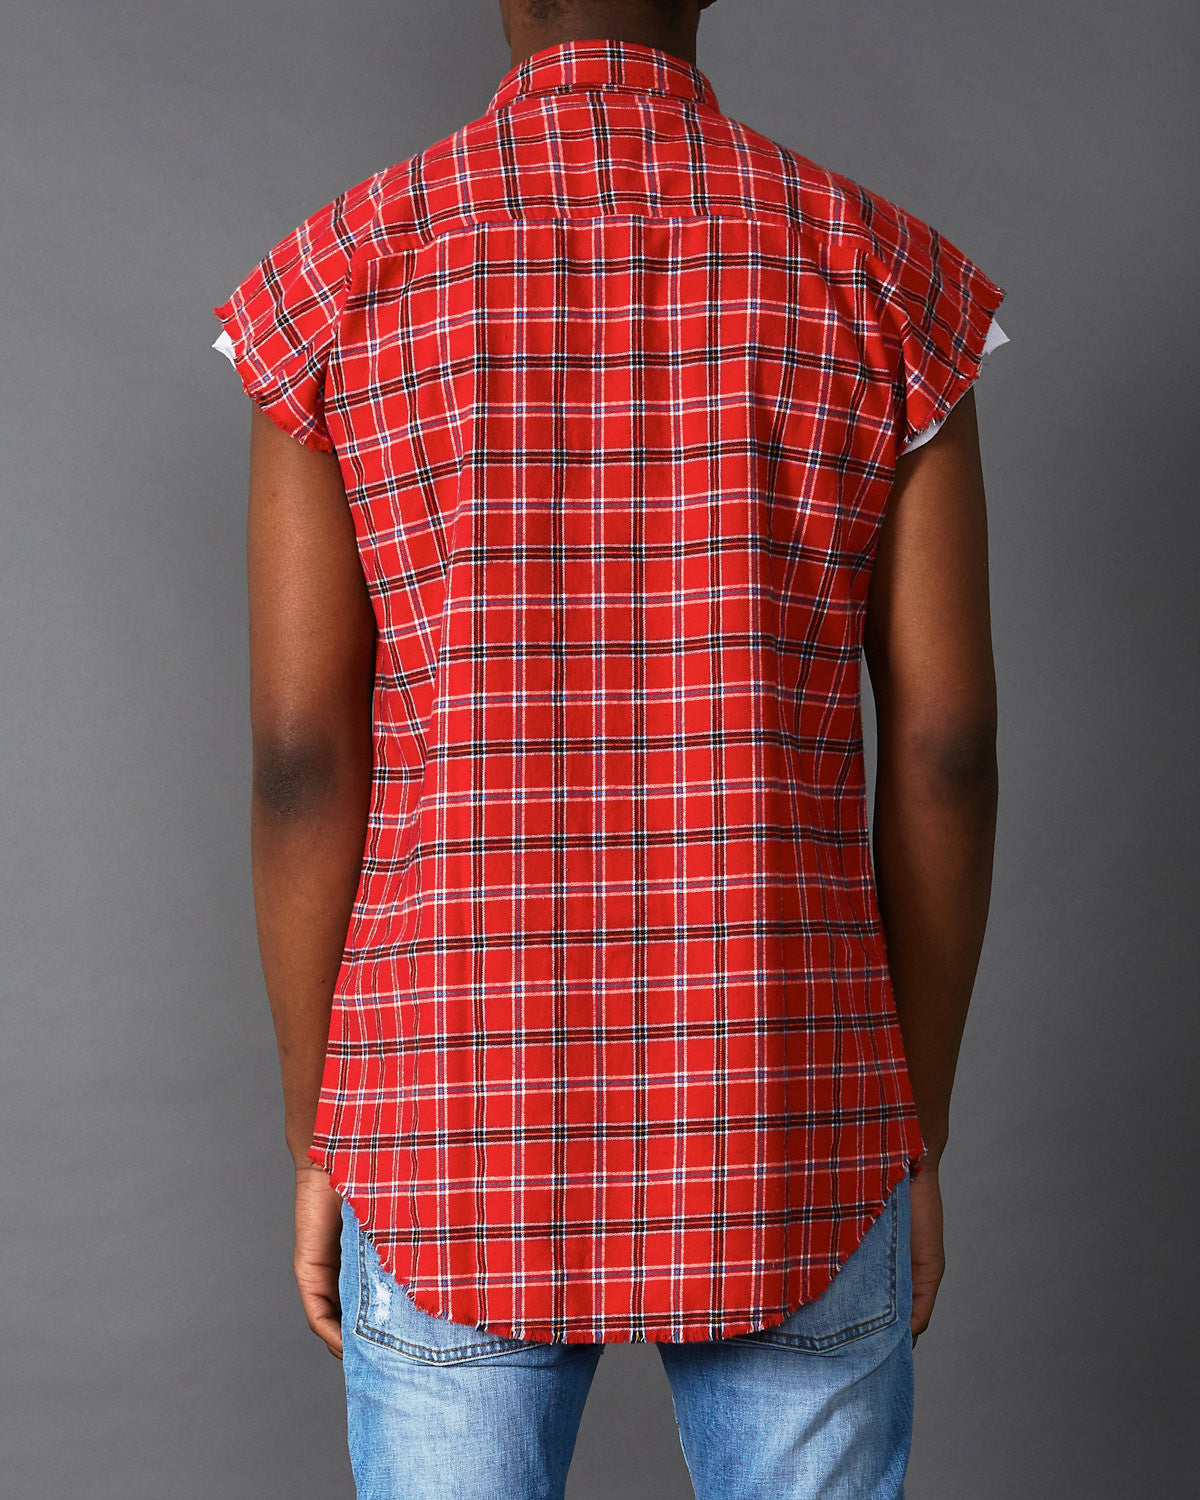 Scorpion Cap Sleeve Shirt Blue/Red Check